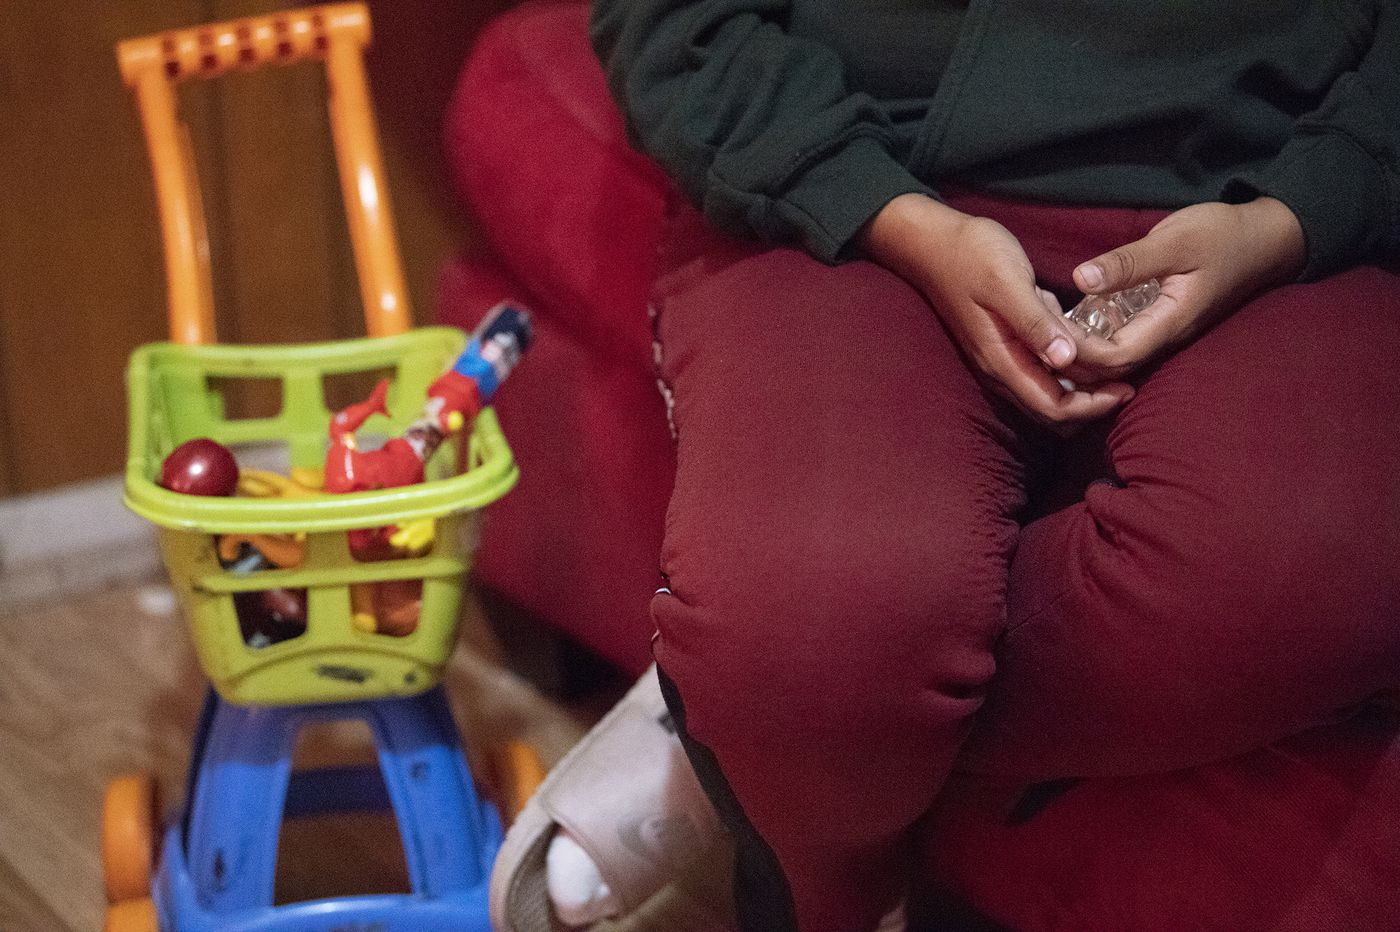 Mother of 5-year-old South Jersey girl apparently abducted in Bridgeton park grieves and waits